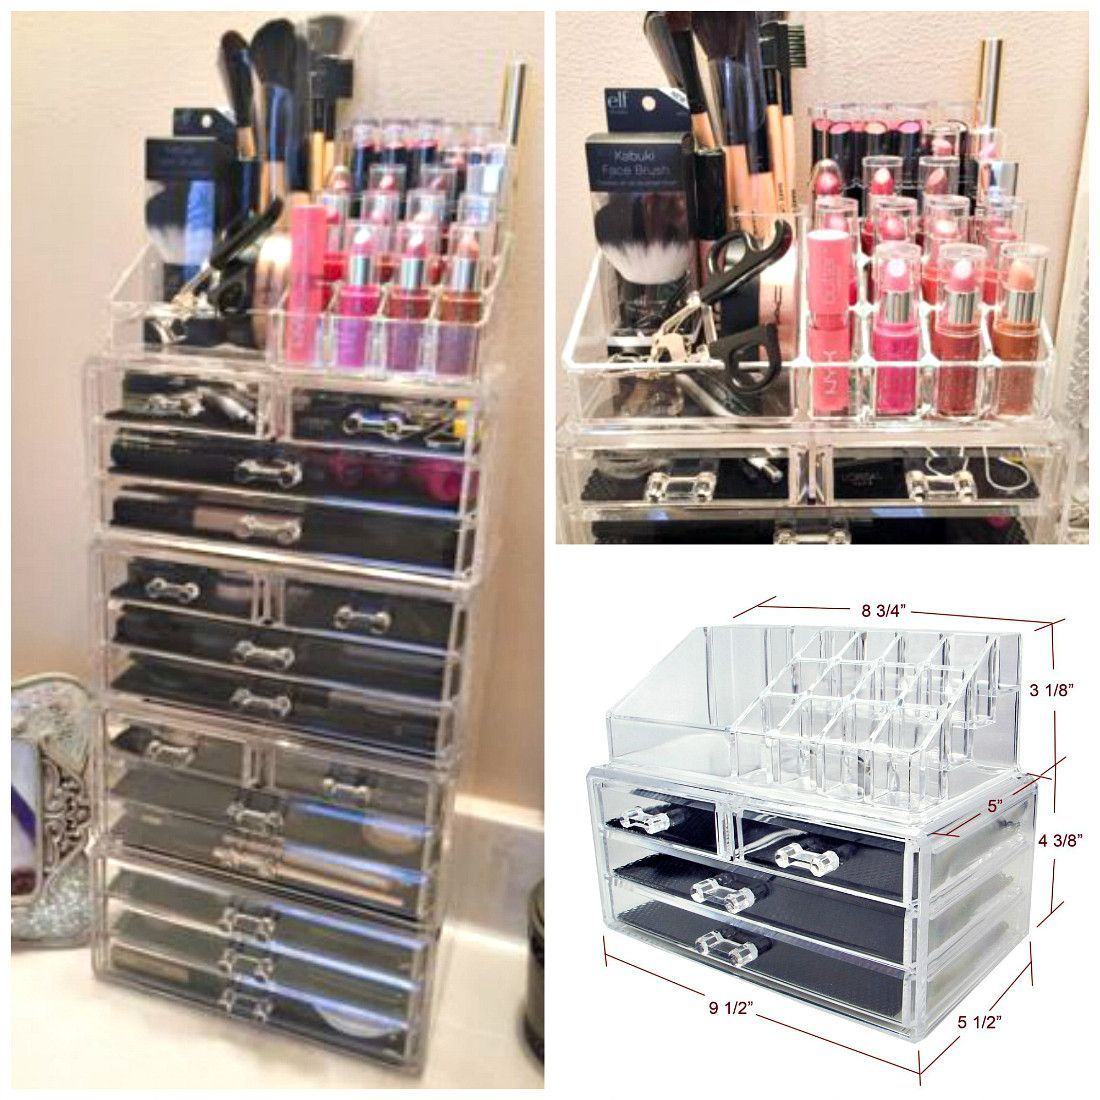 2 PC Acrylic Jewelry u0026 Cosmetic Makeup Storage Display SET  sc 1 st  Pinterest & GLAM NYC 2 PC Acrylic Jewelry Cosmetic Makeup Storage Unit | Makeup ...